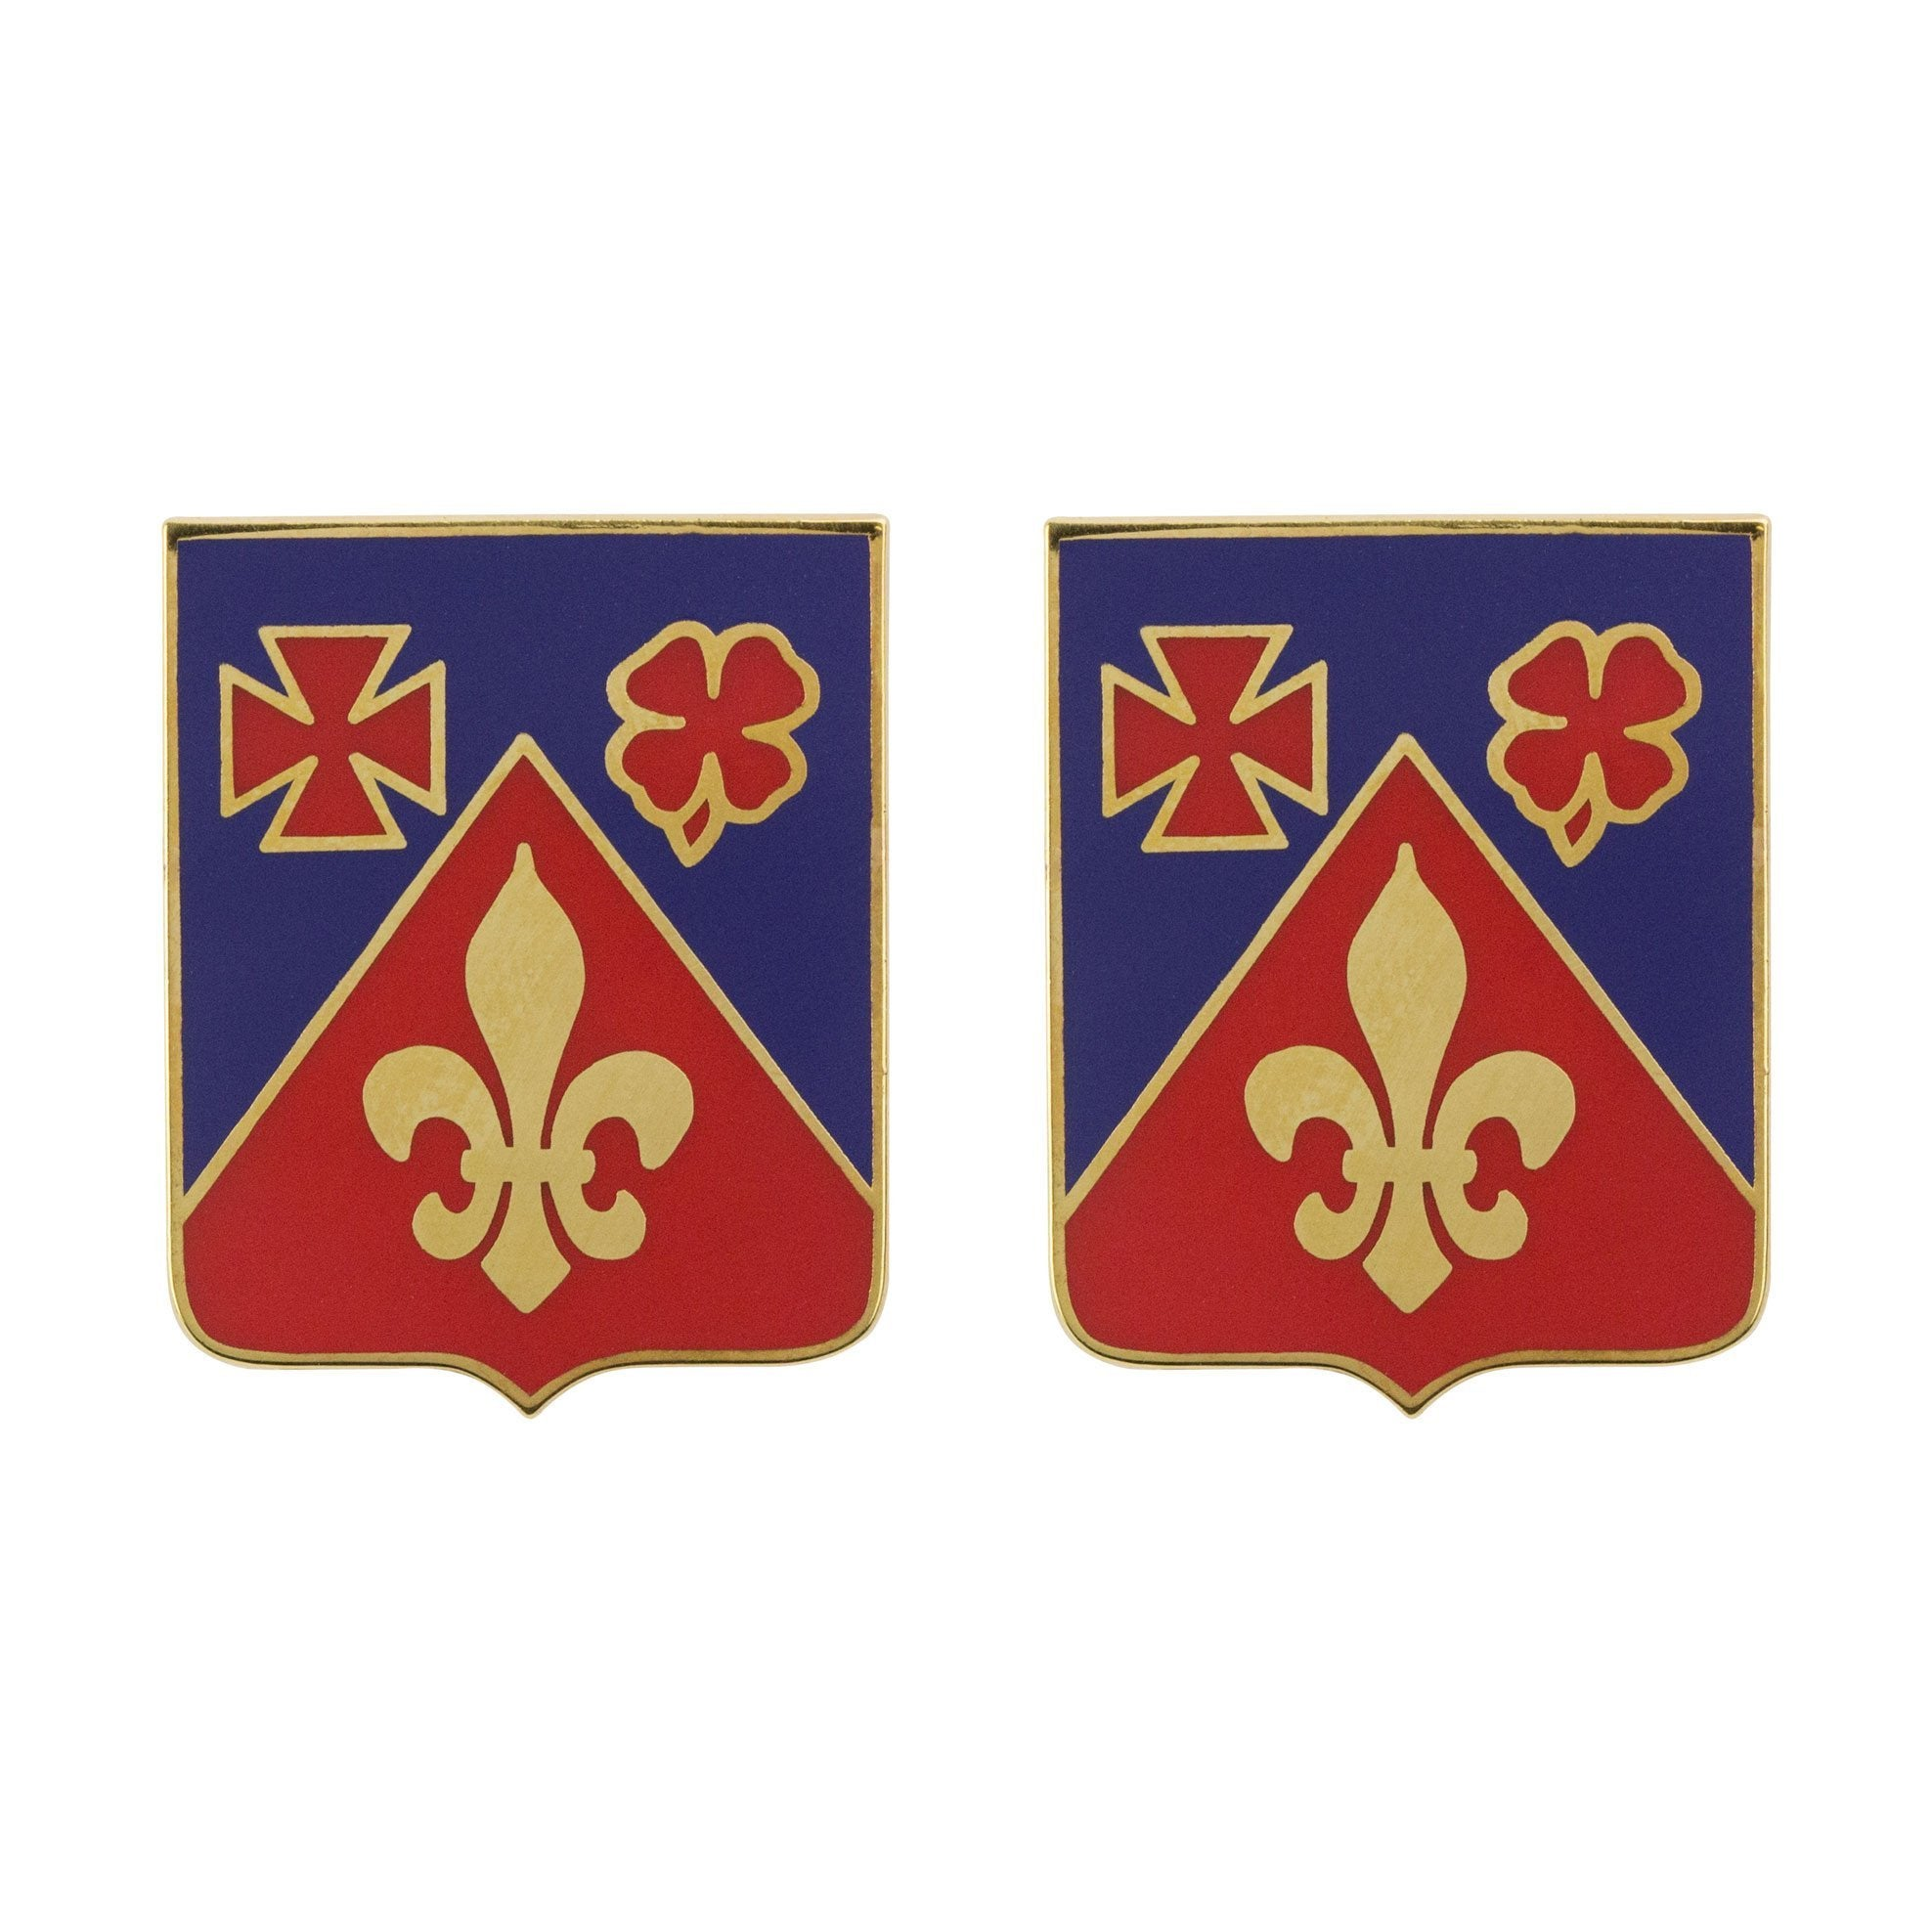 Army Unit Crests - 106th Field Artillery Regiment Unit Crest (No Motto) -   jetcube